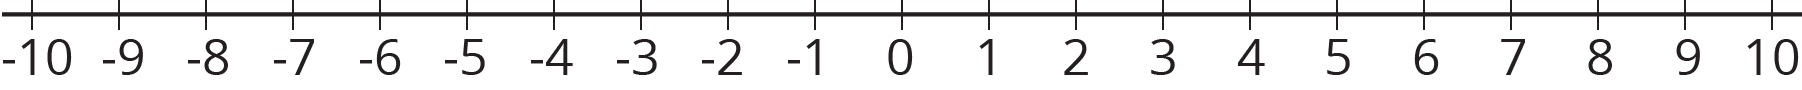 A number line with the numbers negative 10 through 10 indicated.